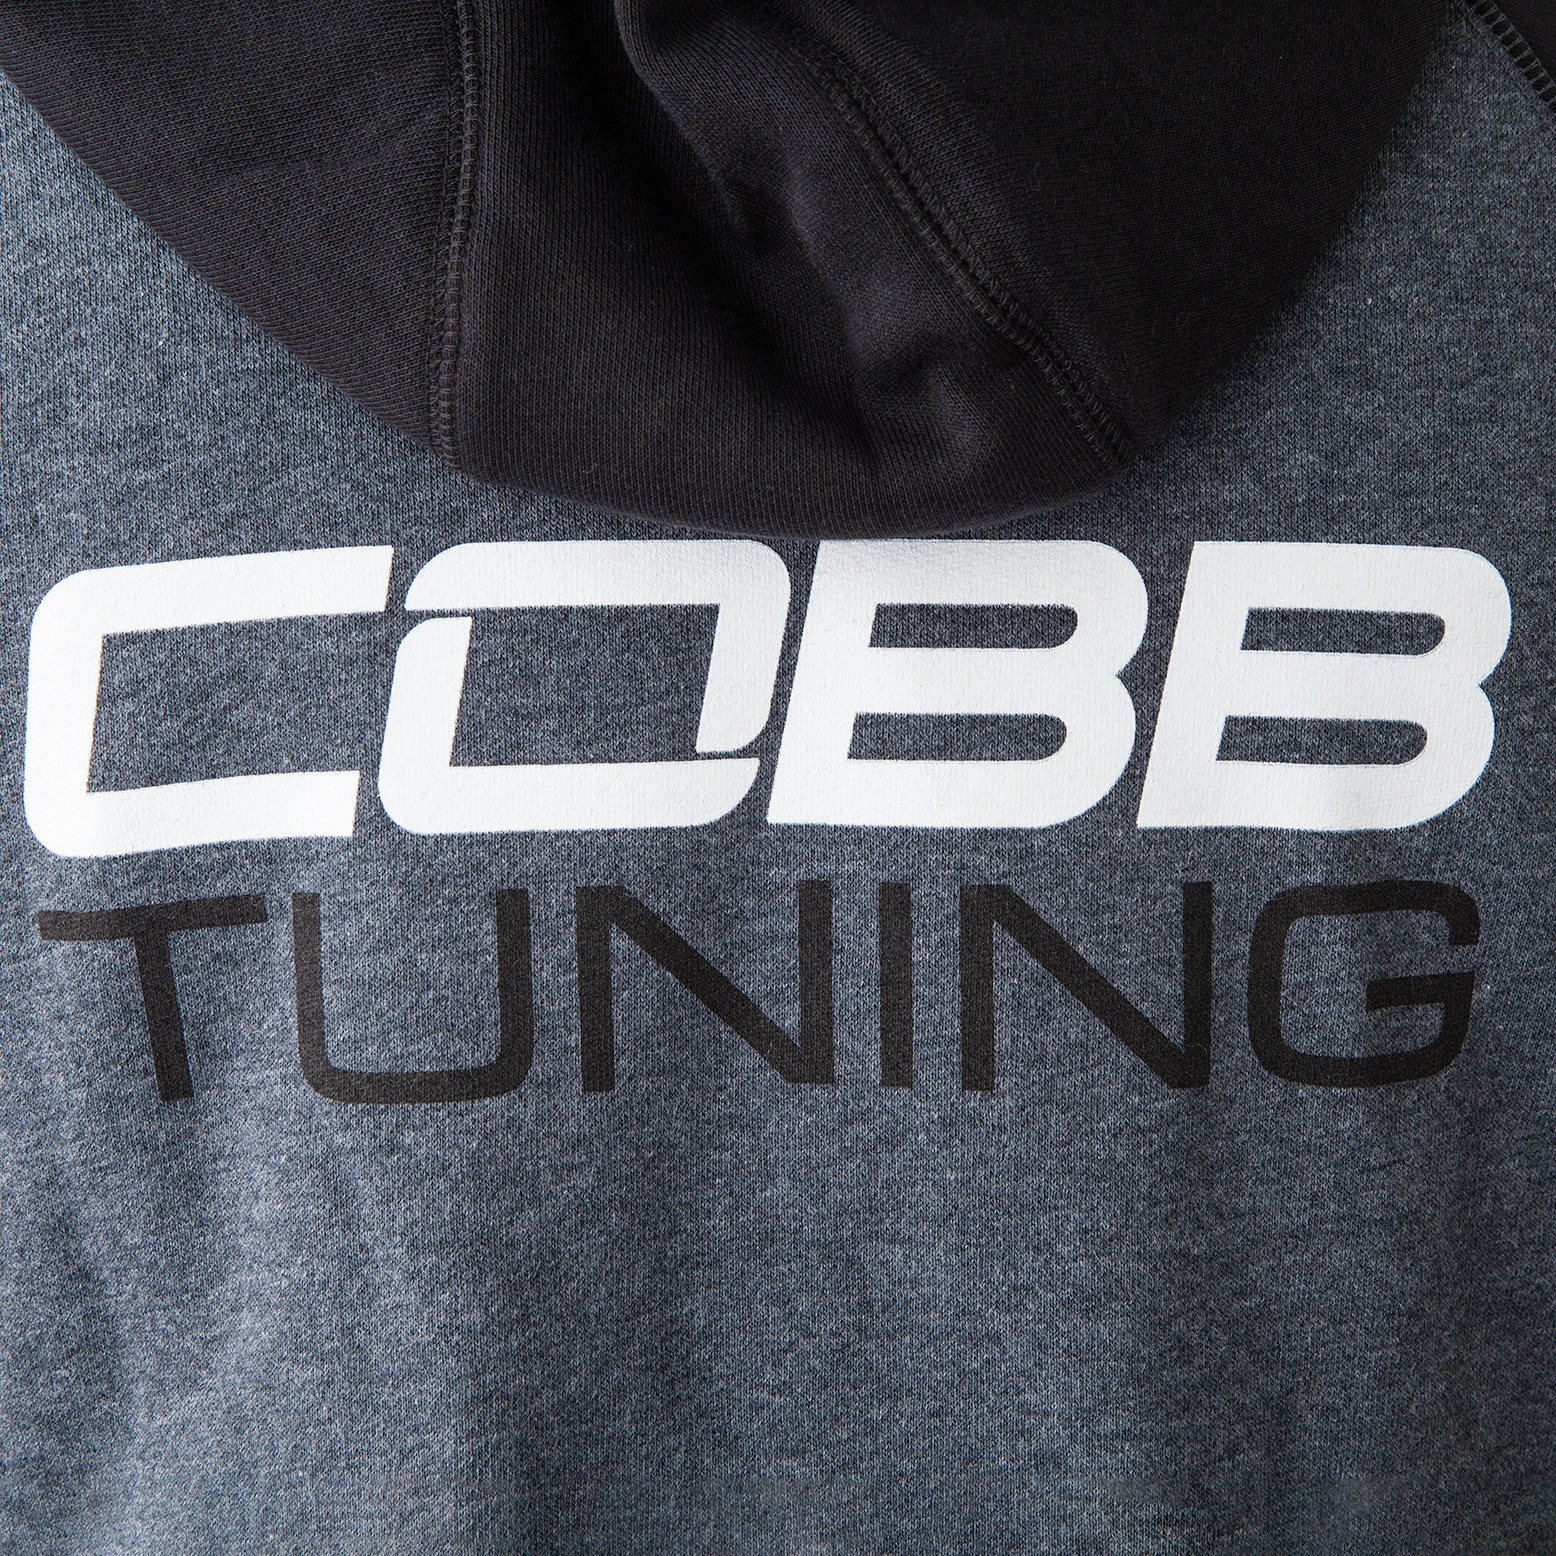 COBB Tuning Logo Full-Zip Hoodie - Men's Grey/Black